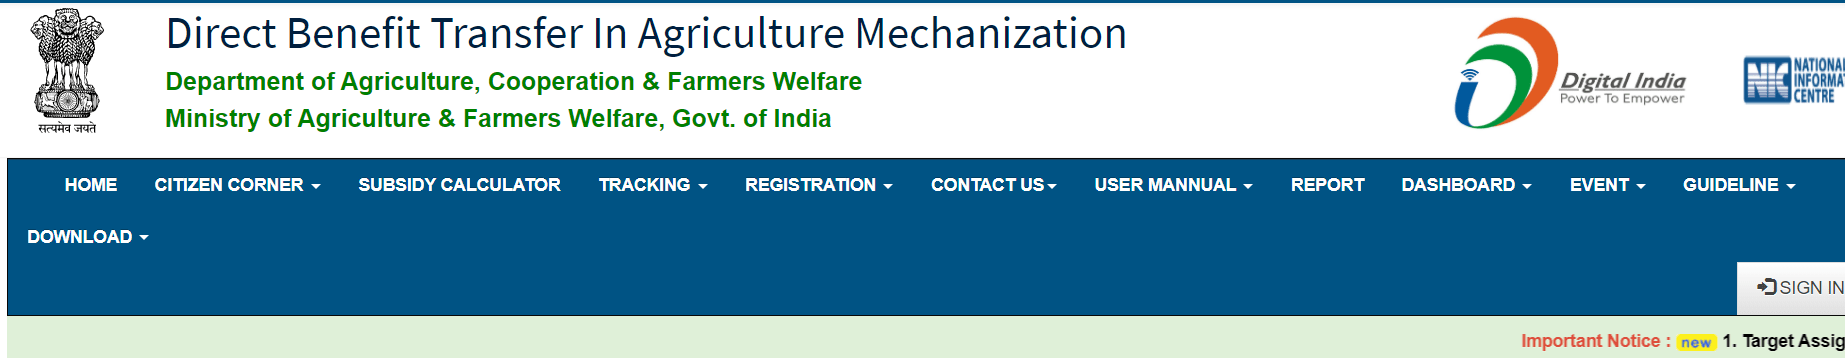 Direct Benefit Transfer in Agriculture Mechanization